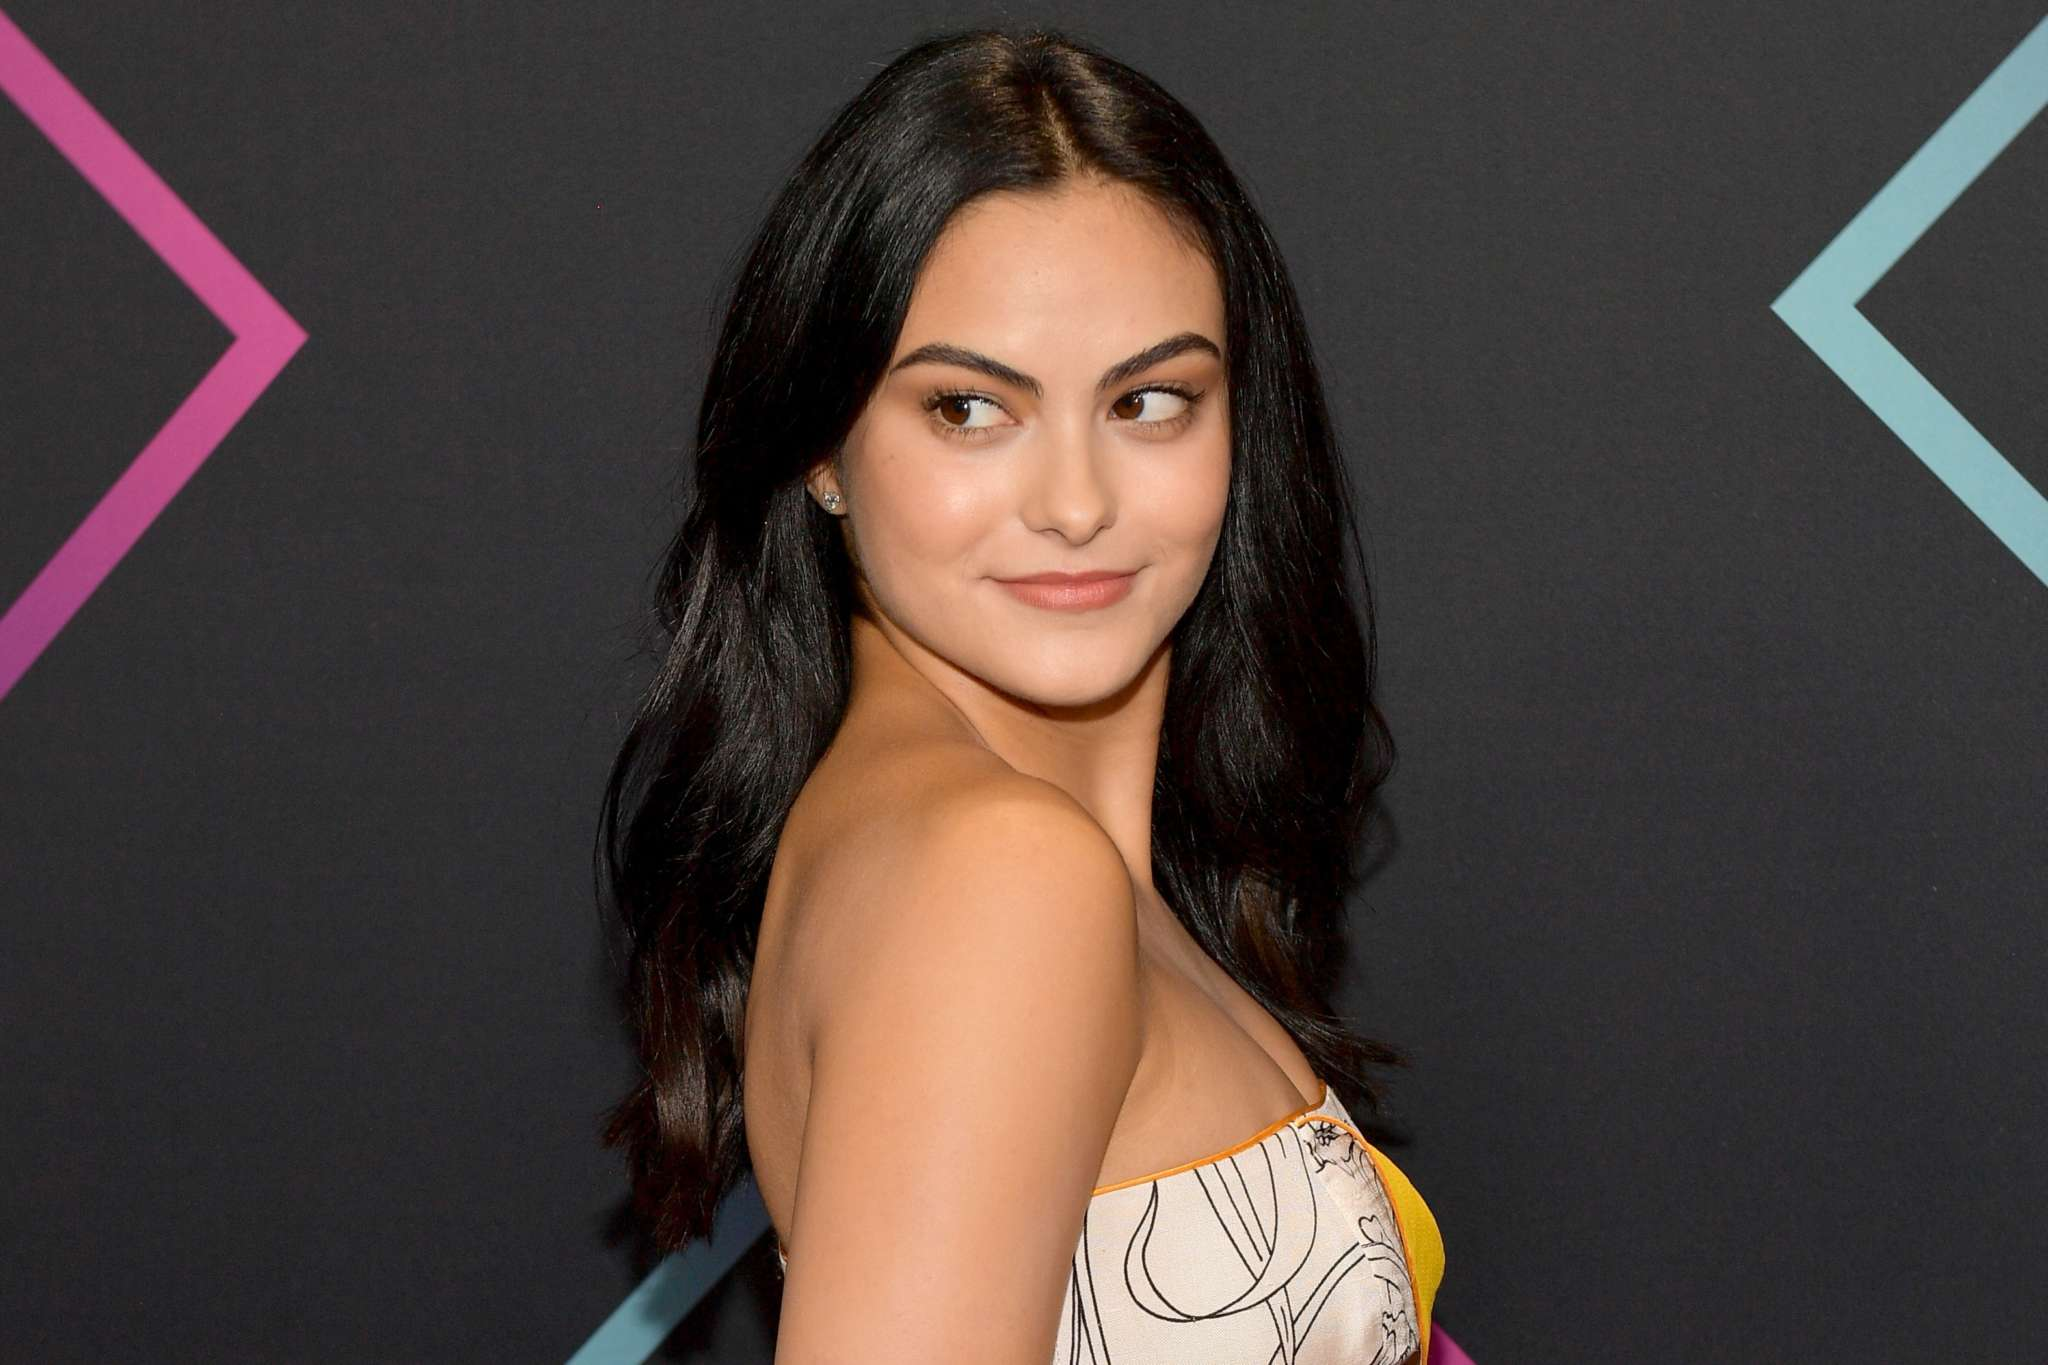 Camila Mendes REVEALS She Was Roofied & Assaulted!